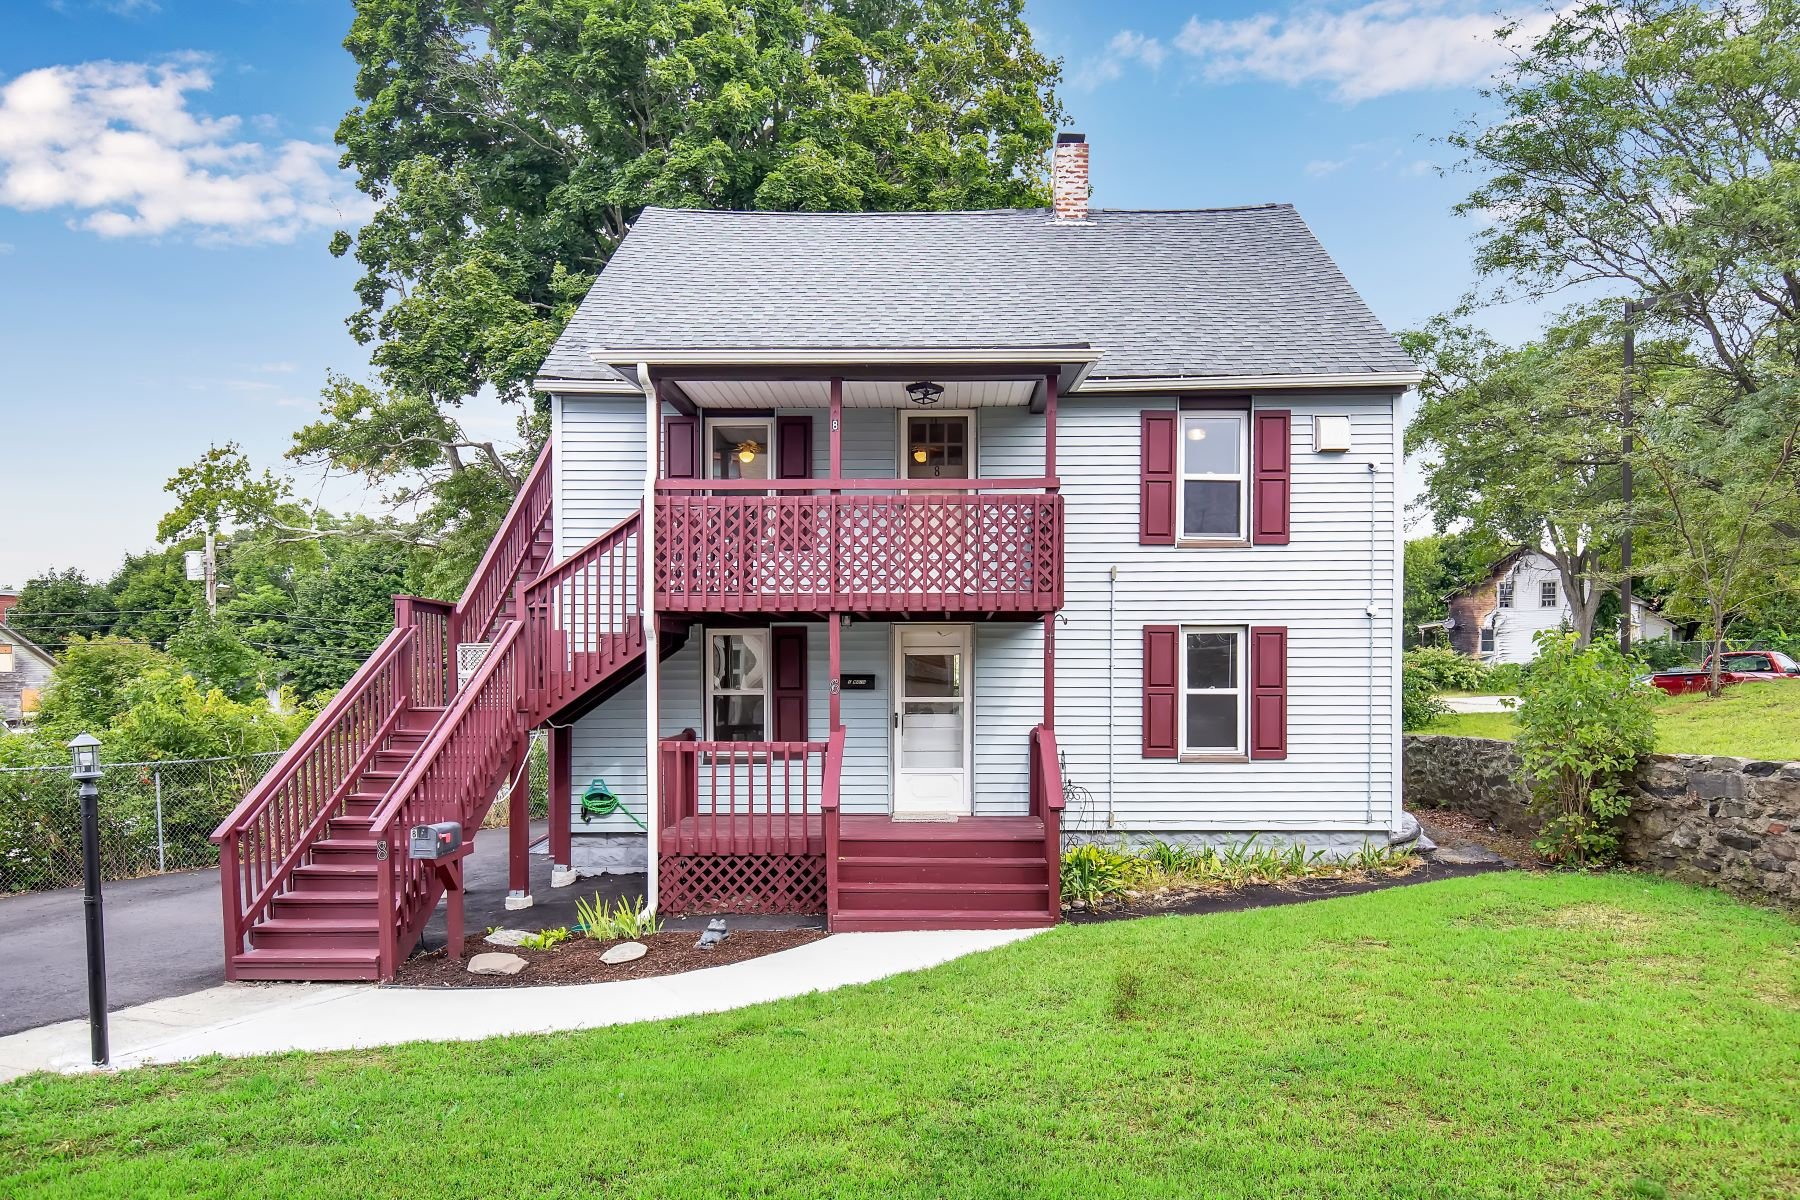 for Sale at Remodeled 2 Unit Home! 6-8 Main Street Griswold, Connecticut 06351 United States